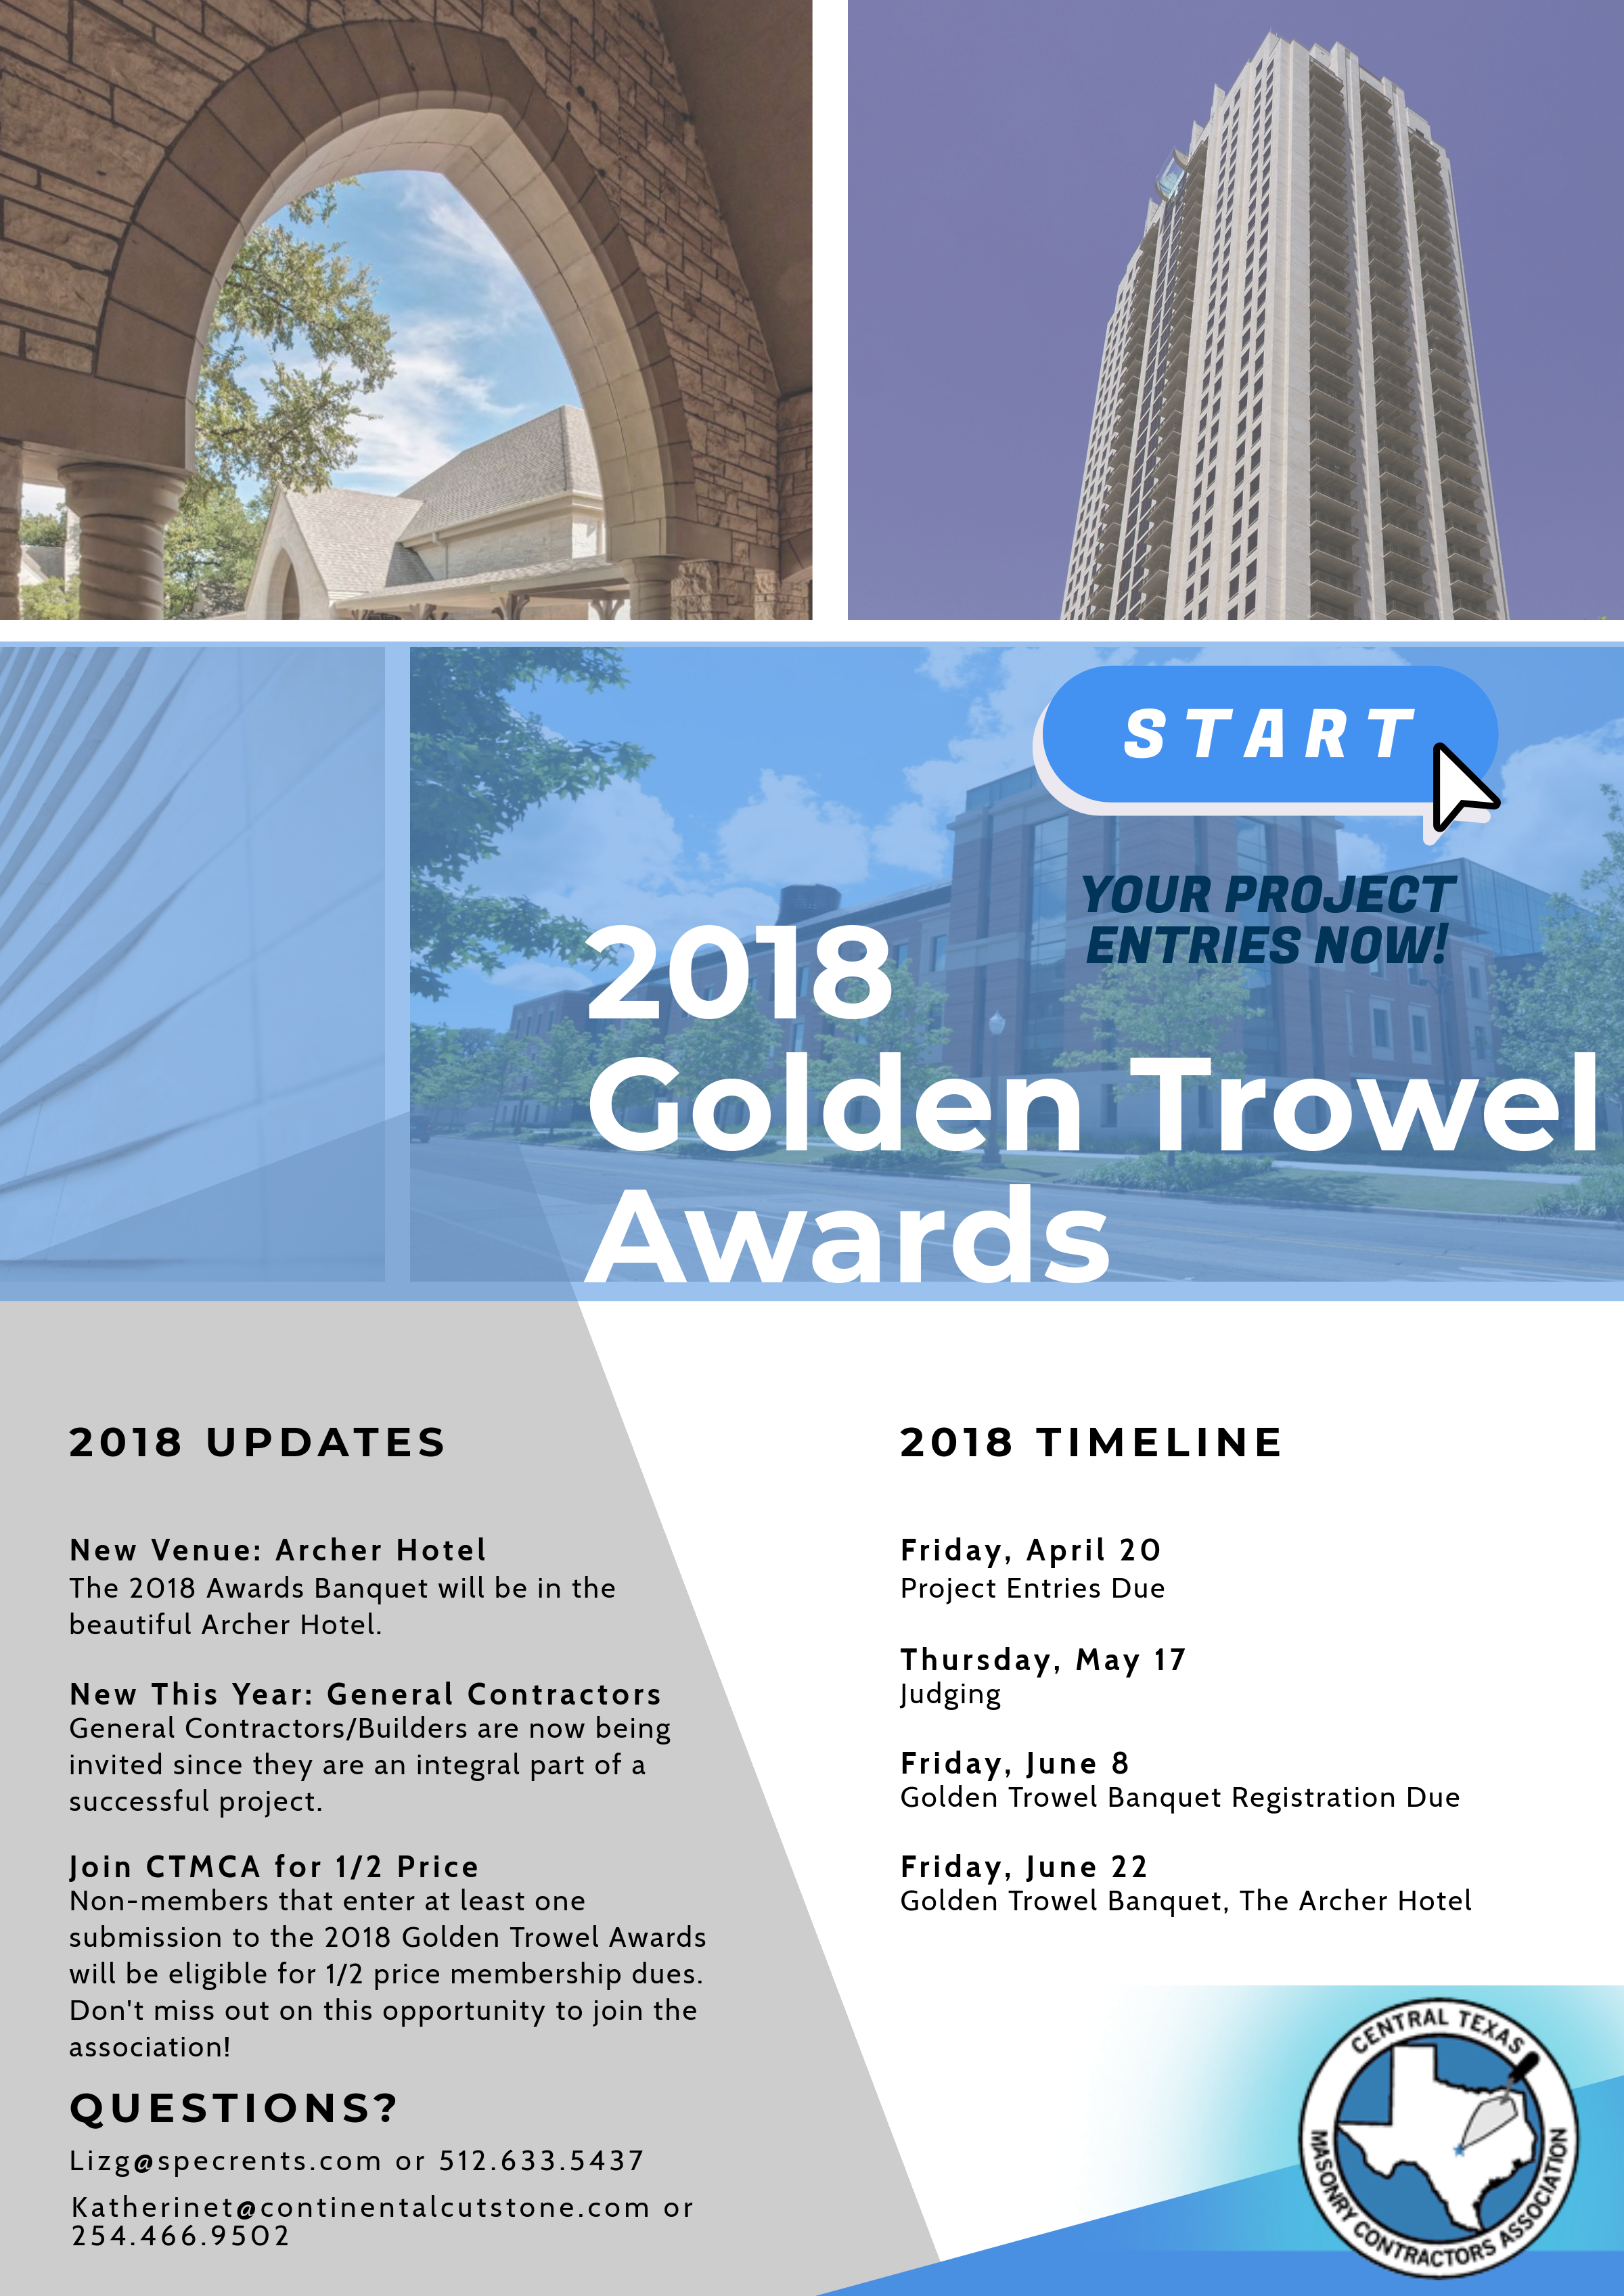 Golden Trowel Flyer_March 2018 with Half Price Membership_Rev2.png